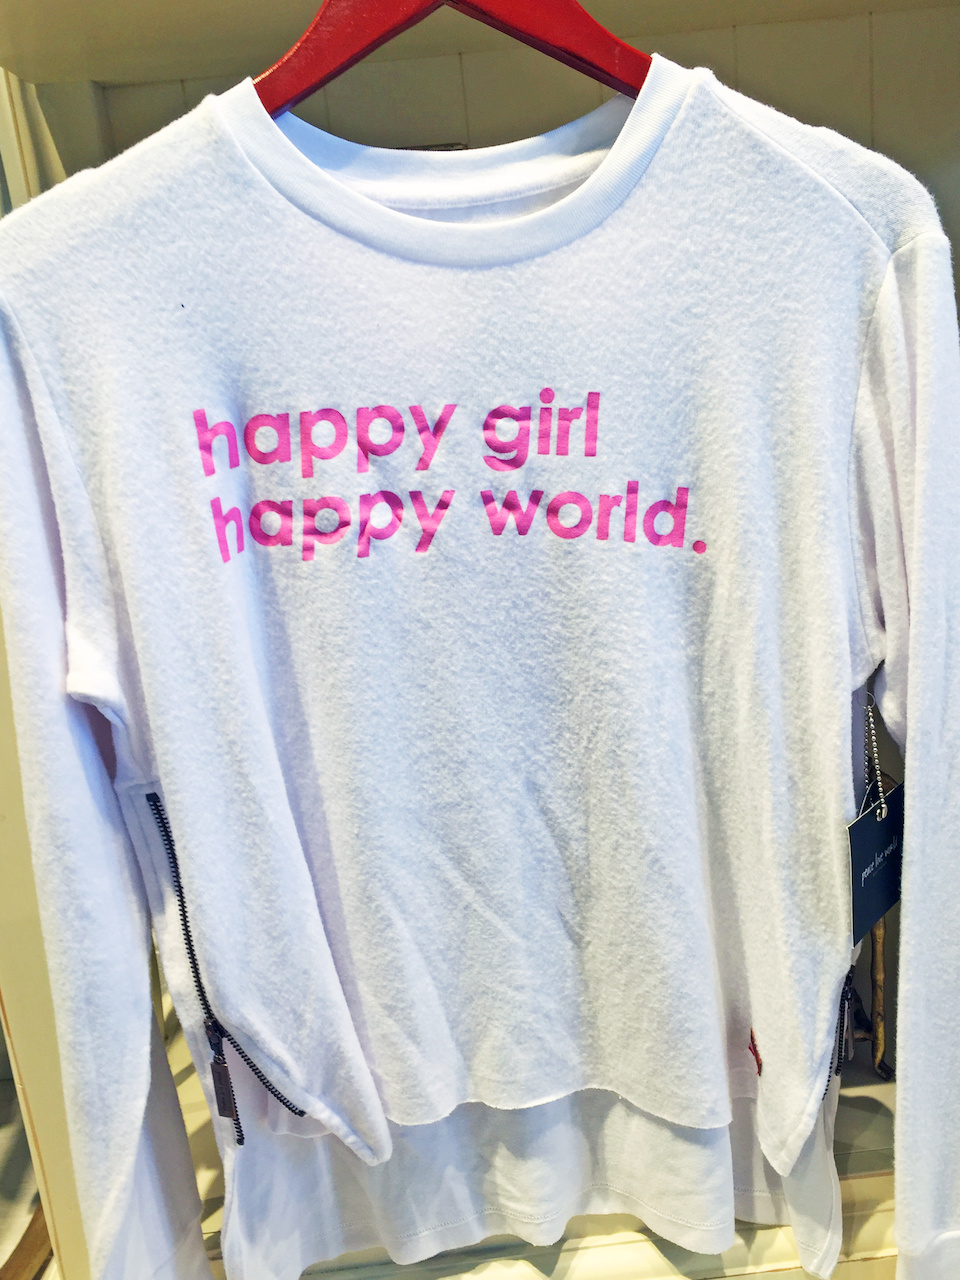 styleblueprint atlanta september finds happy girl sweatshirt